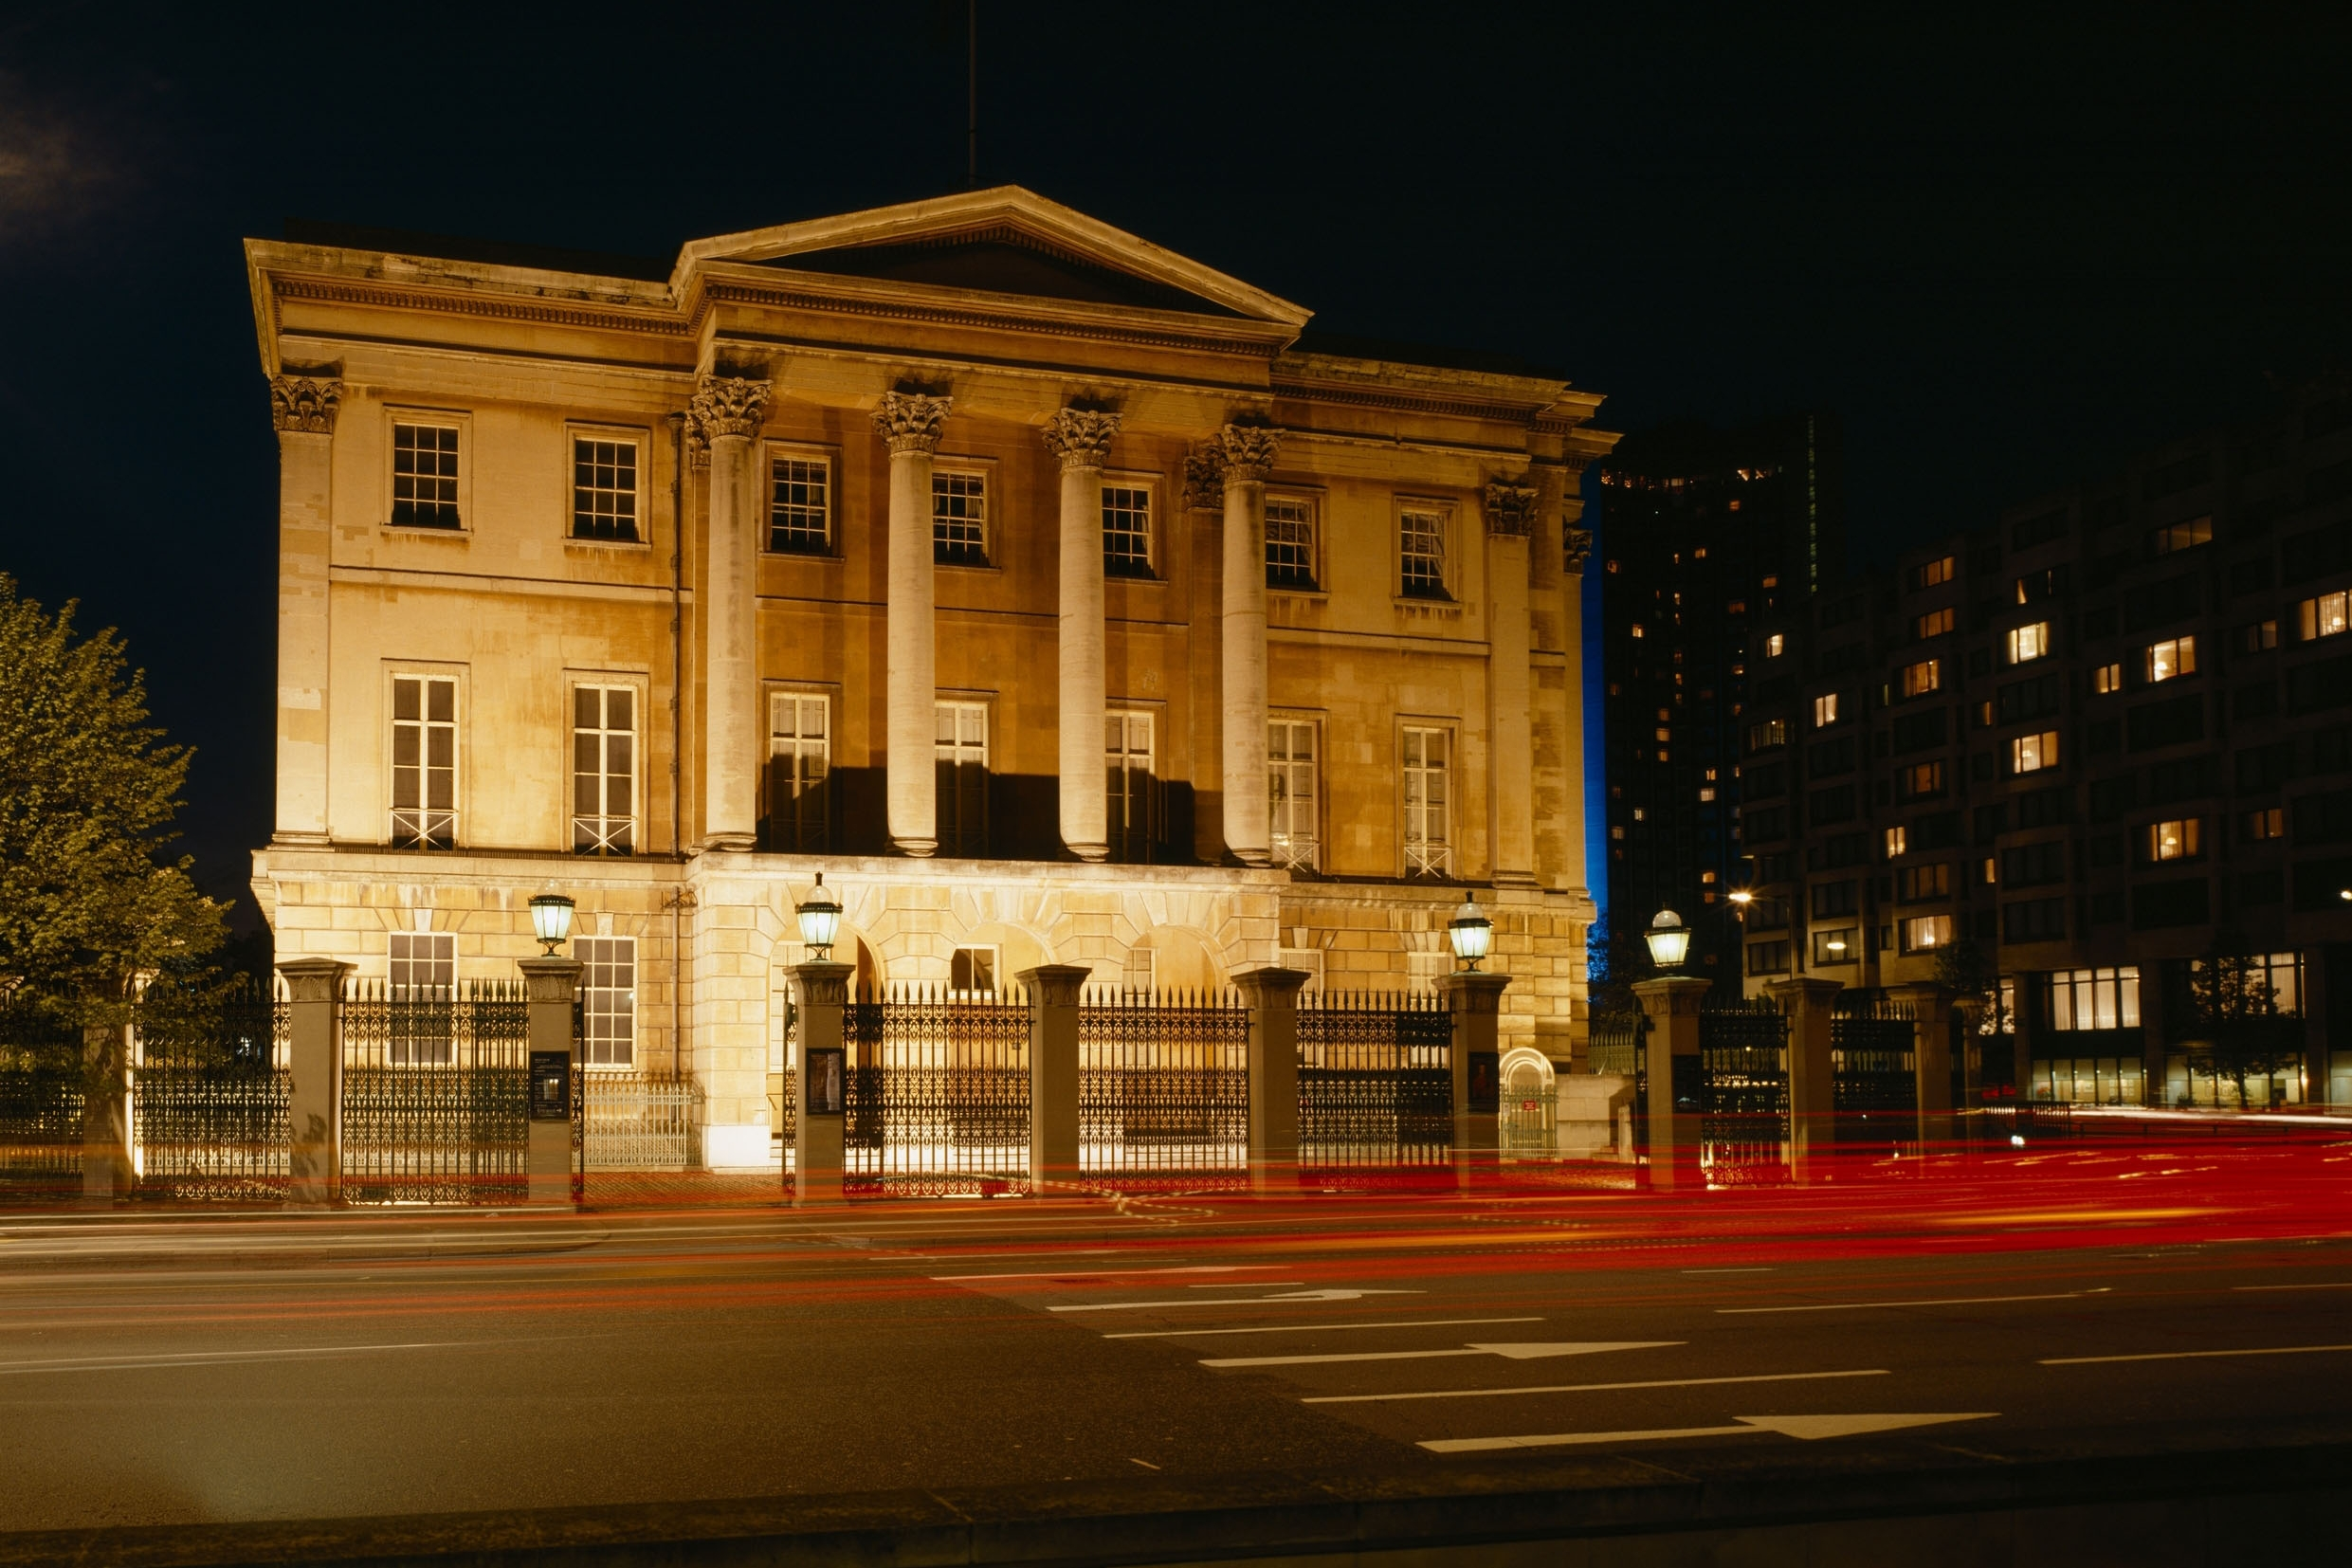 APSLEY HOUSE - A Private Candlelit Tour of Number One, London, Home to The Duke of Wellington